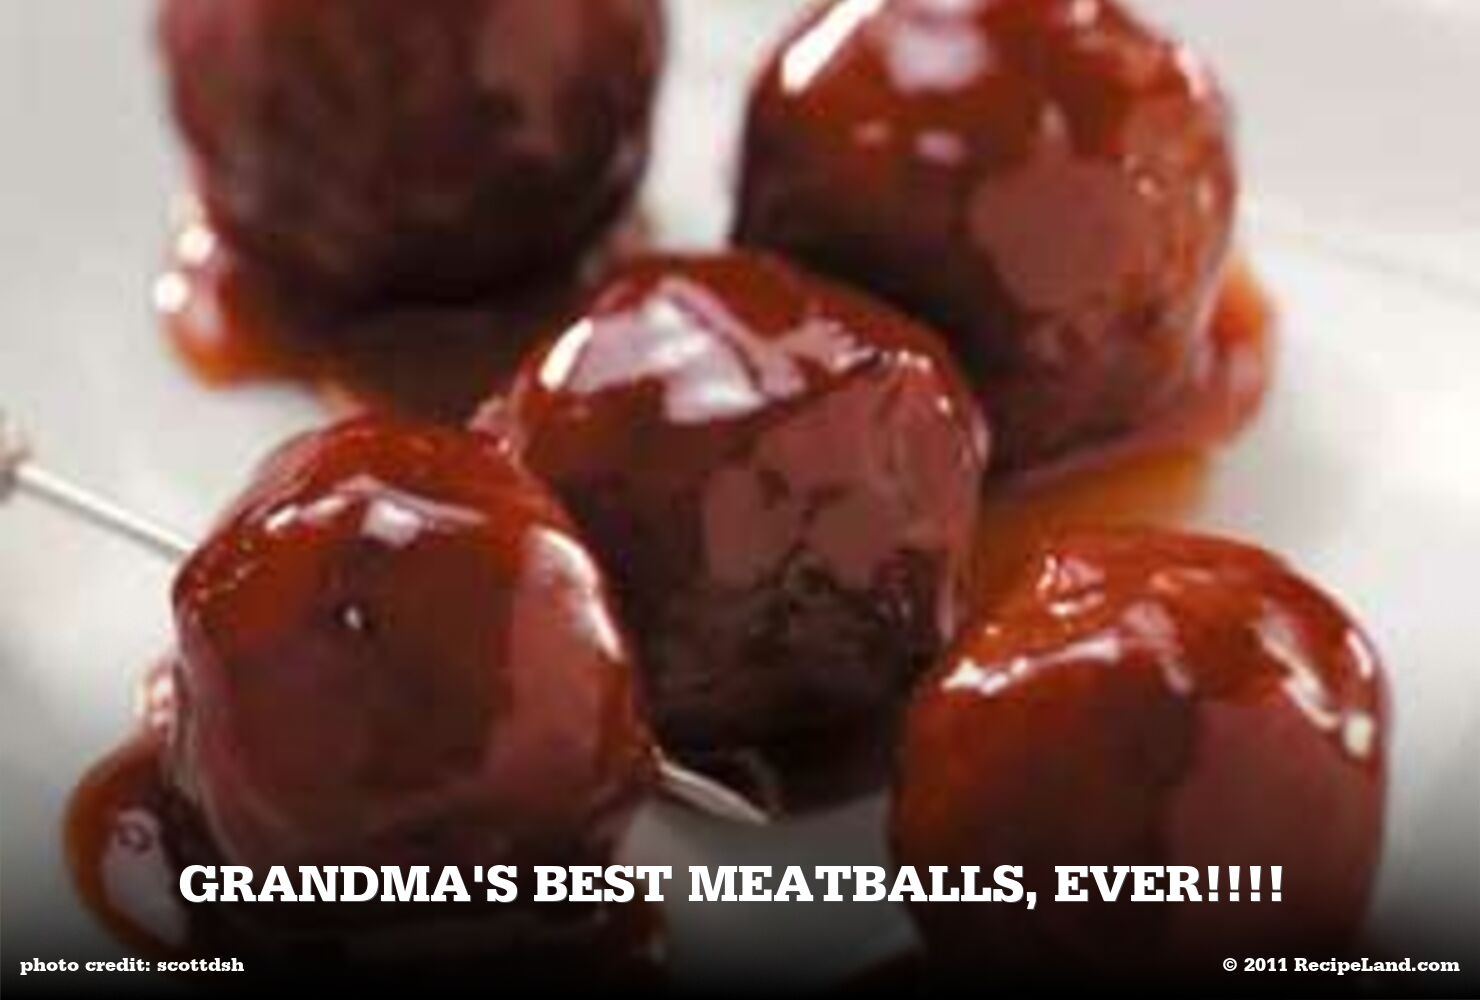 Grandma's Best Meatballs, EVER!!!!